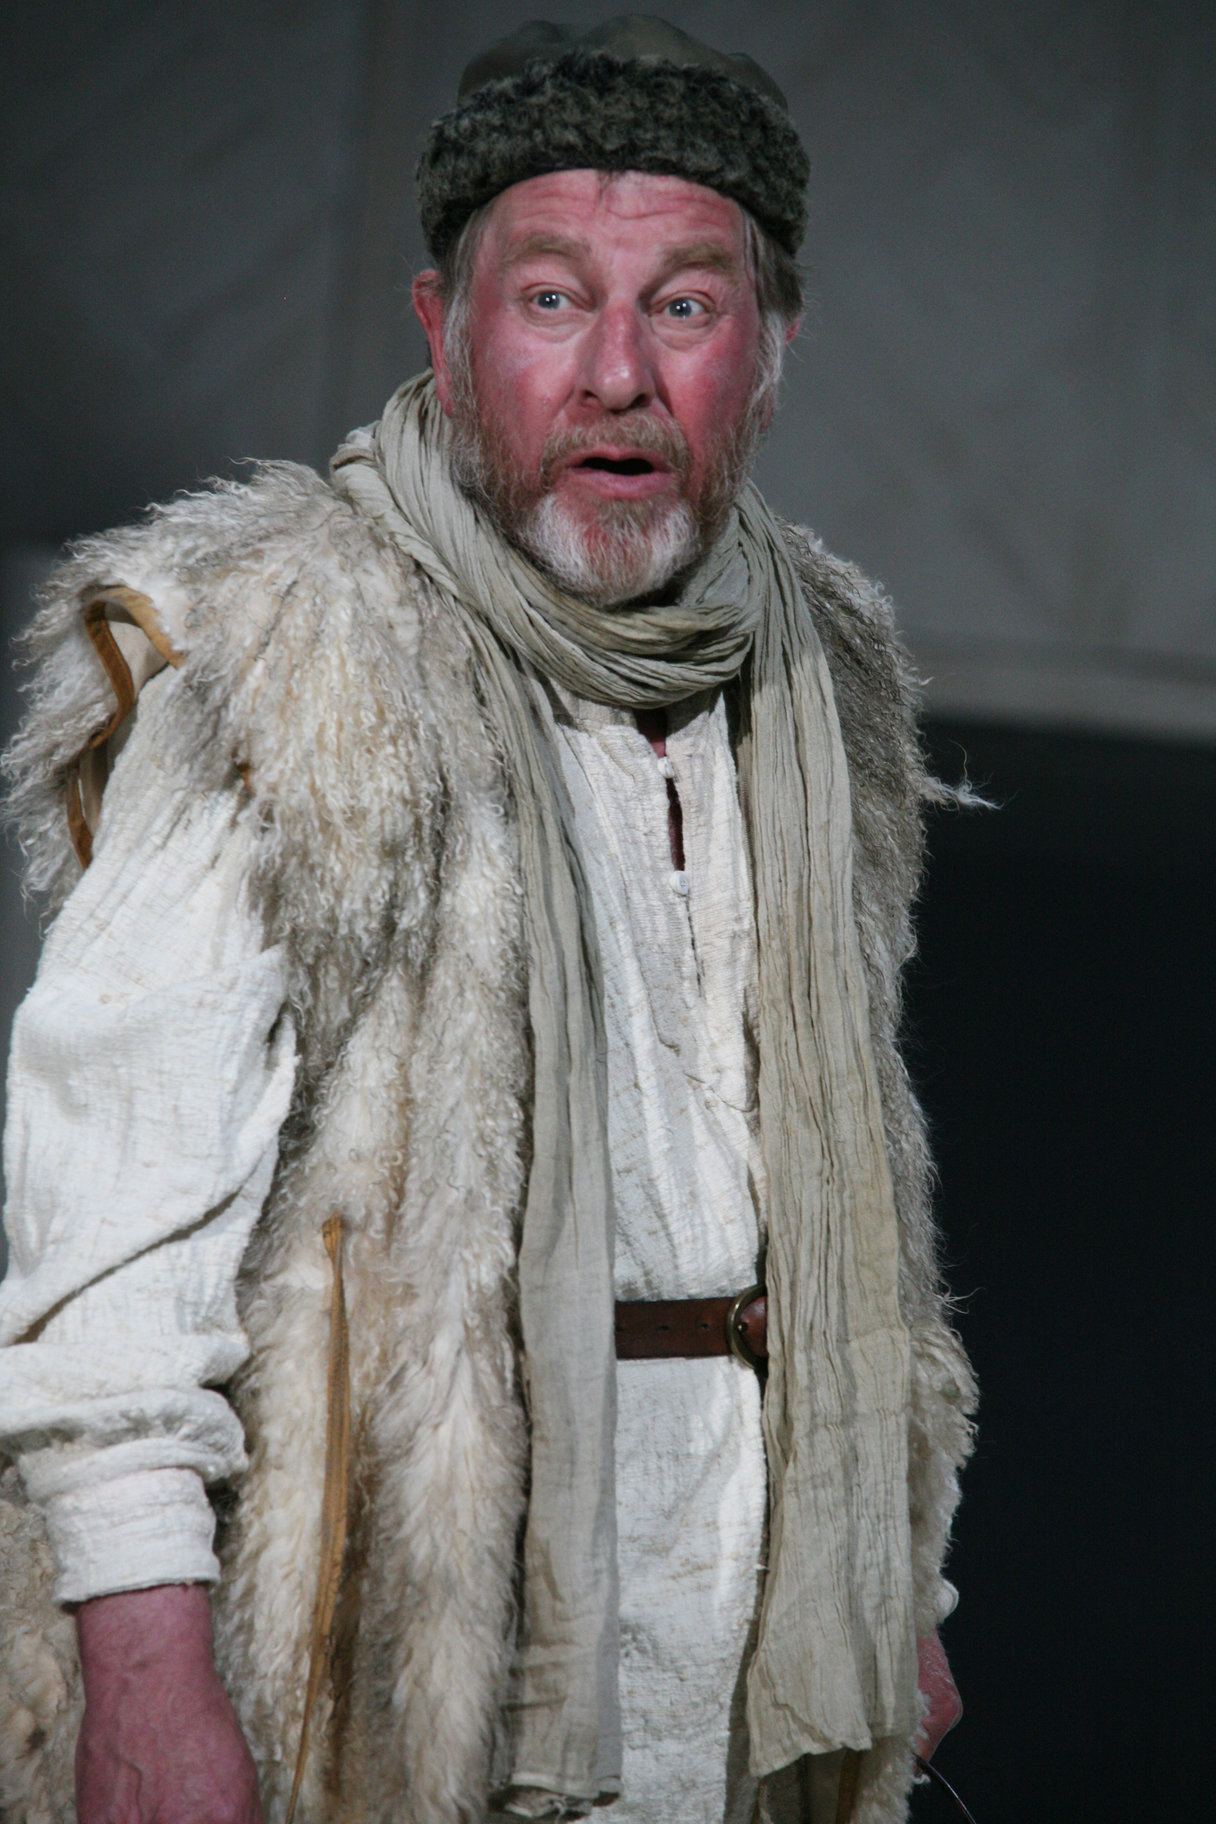 A man in furs, a scarf and hat.